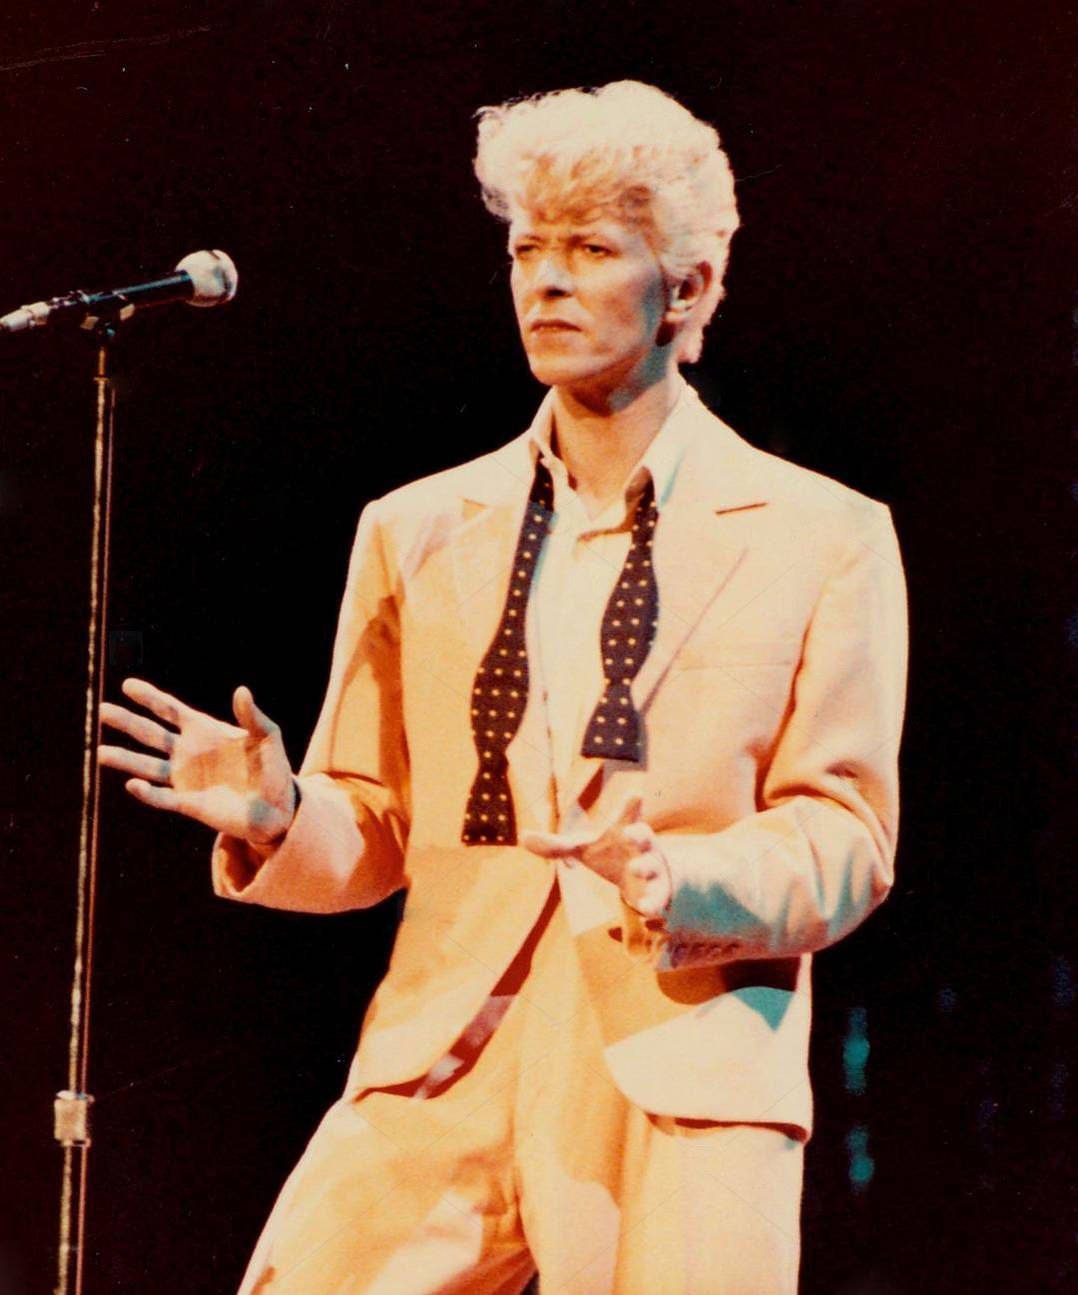 David Bowie during the Serious Moonlight tour, July 27 1983 © Michael Brito    David bowie fashion, David bowie, Bowie